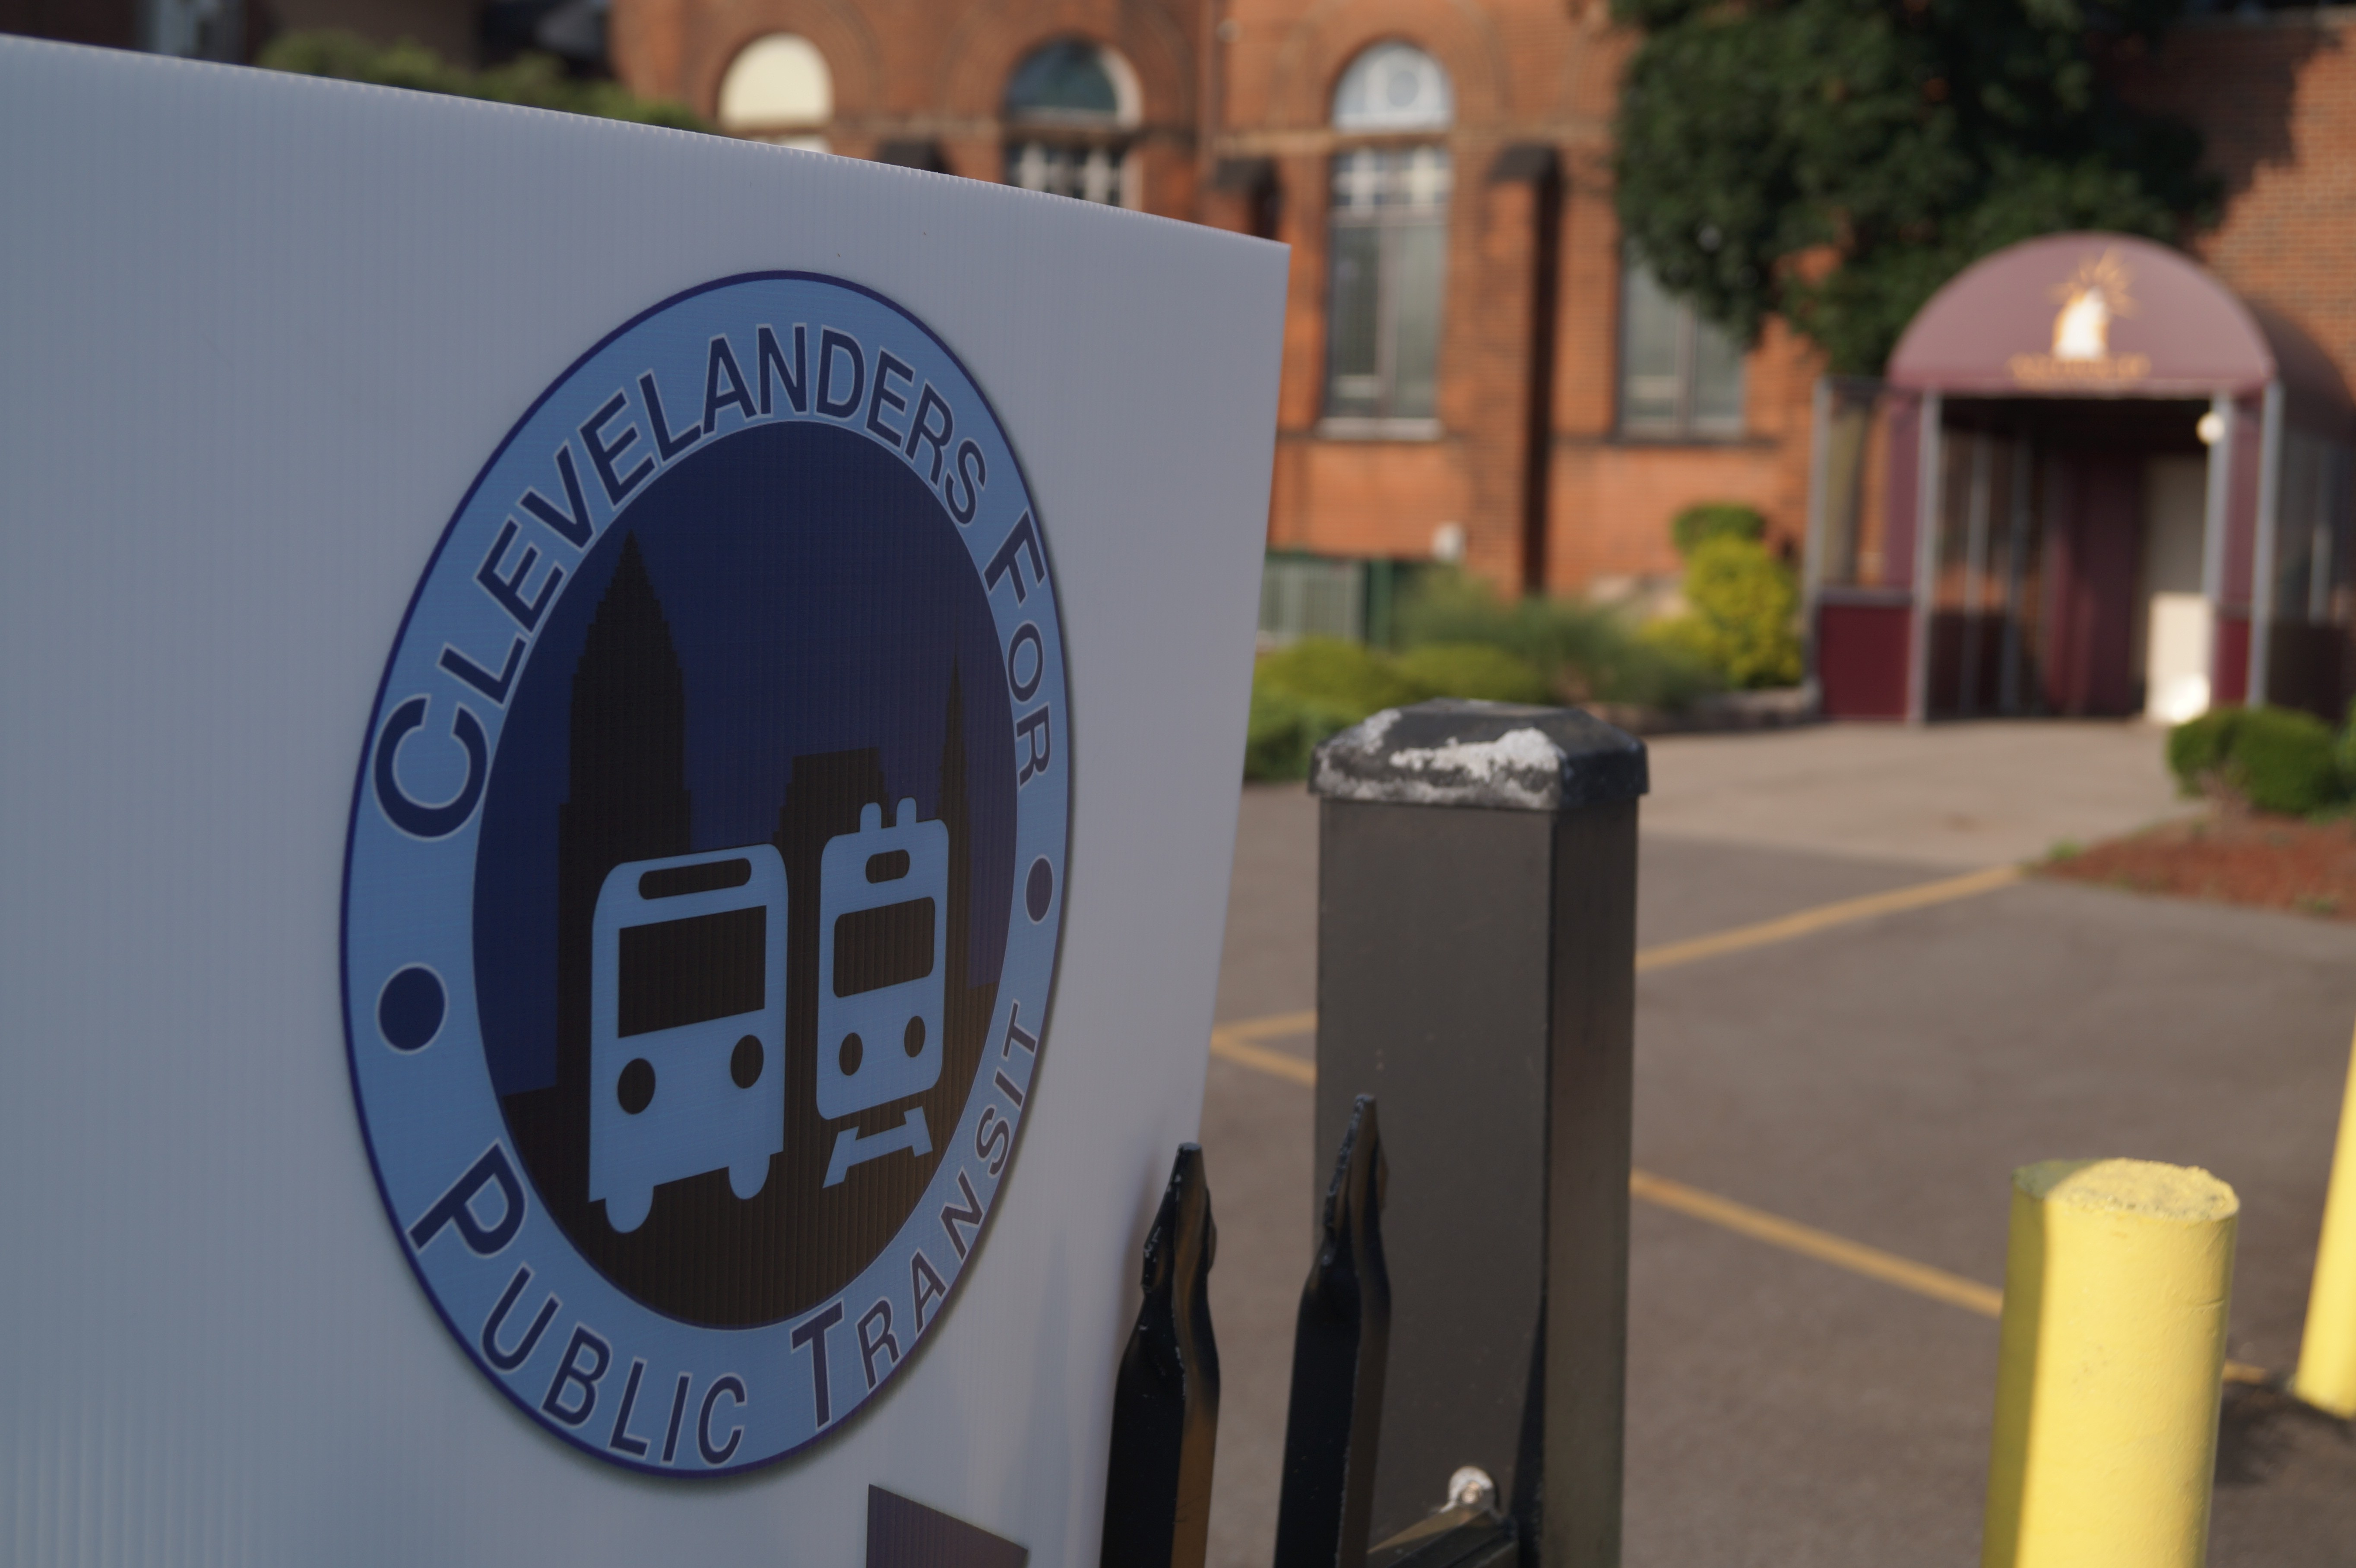 Clevelanders for Public Transit Proposes Sweeping Reforms to